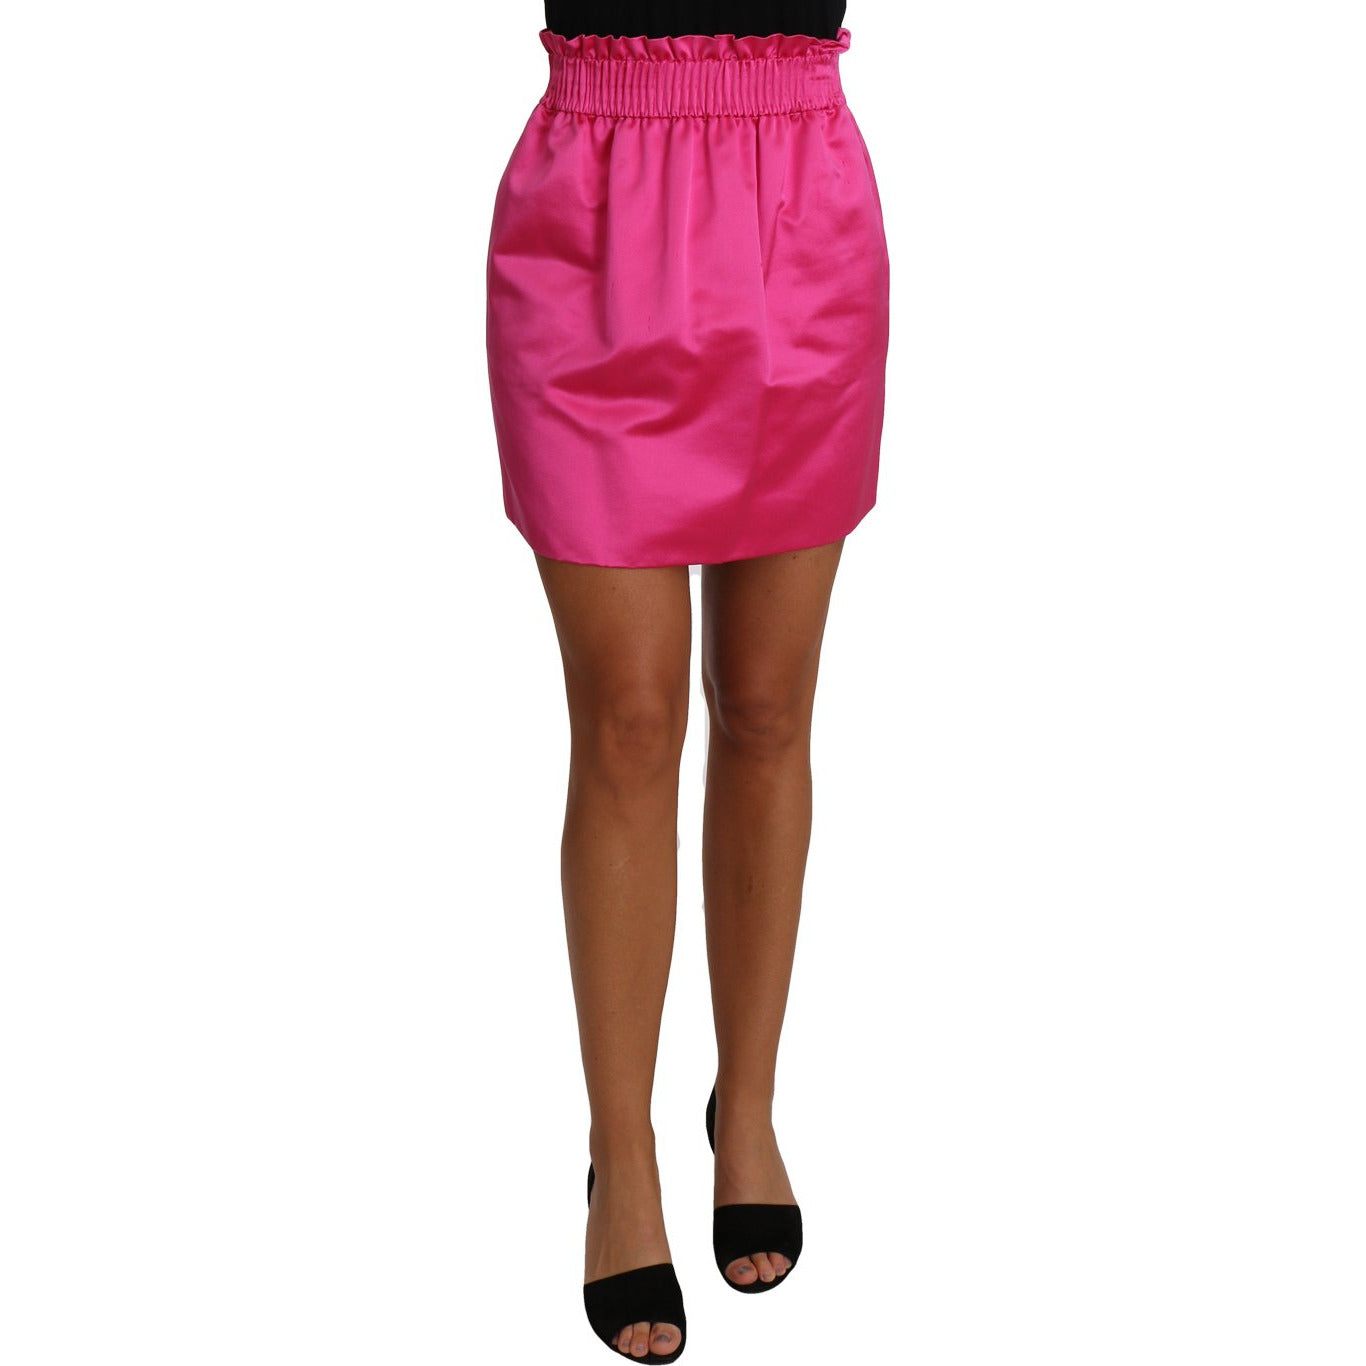 Paperbag Mini Skirt Pink 100% Silk Short